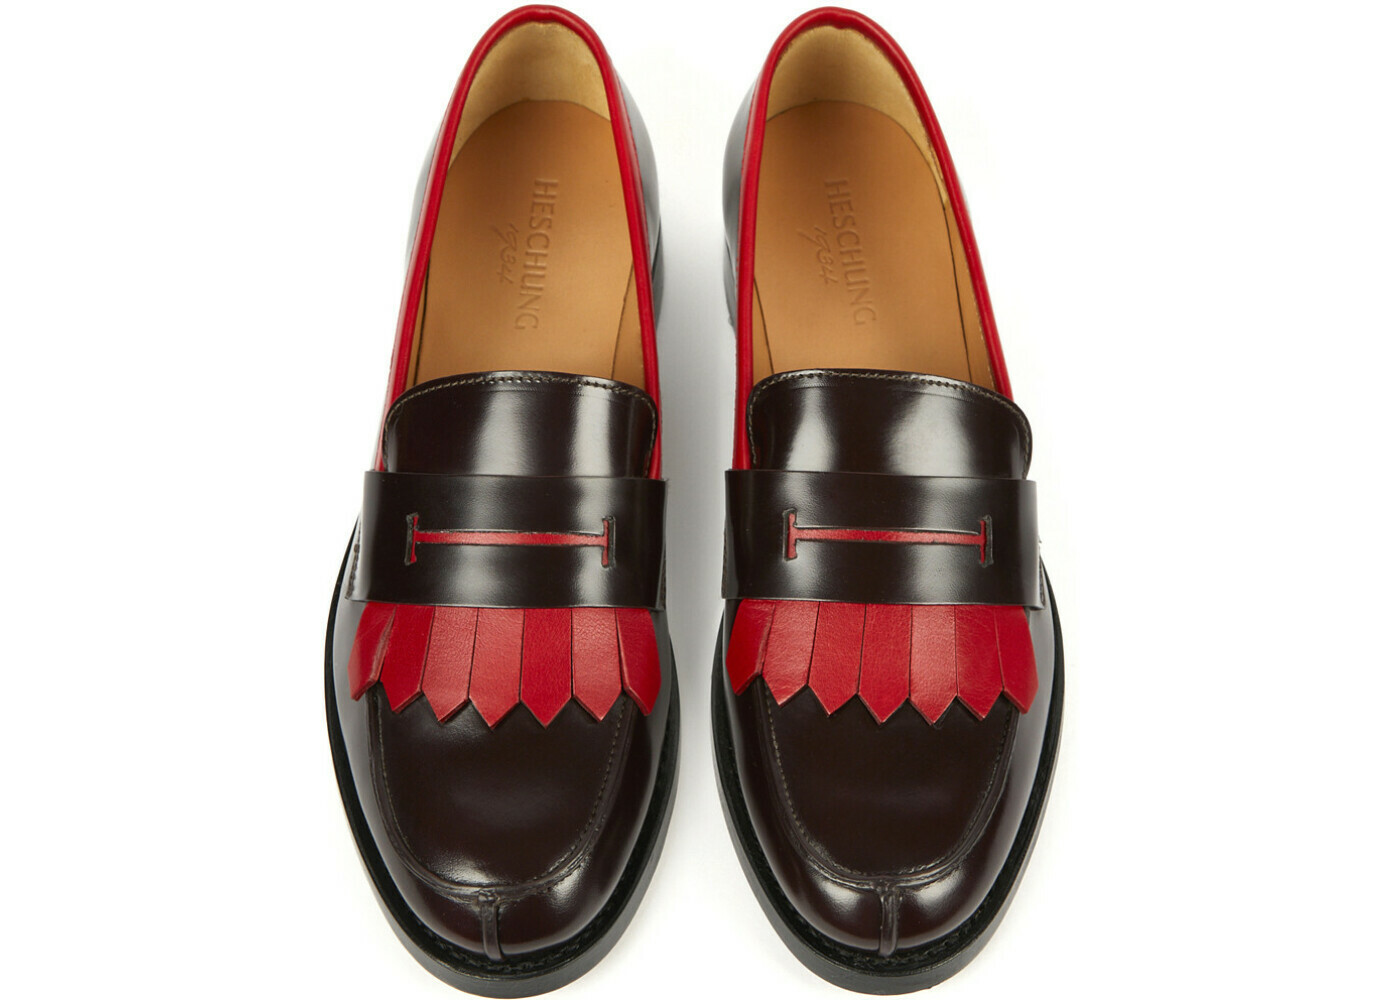 CAMBRIDGE Windsor/Genova Aubergine/Rouge Cuir